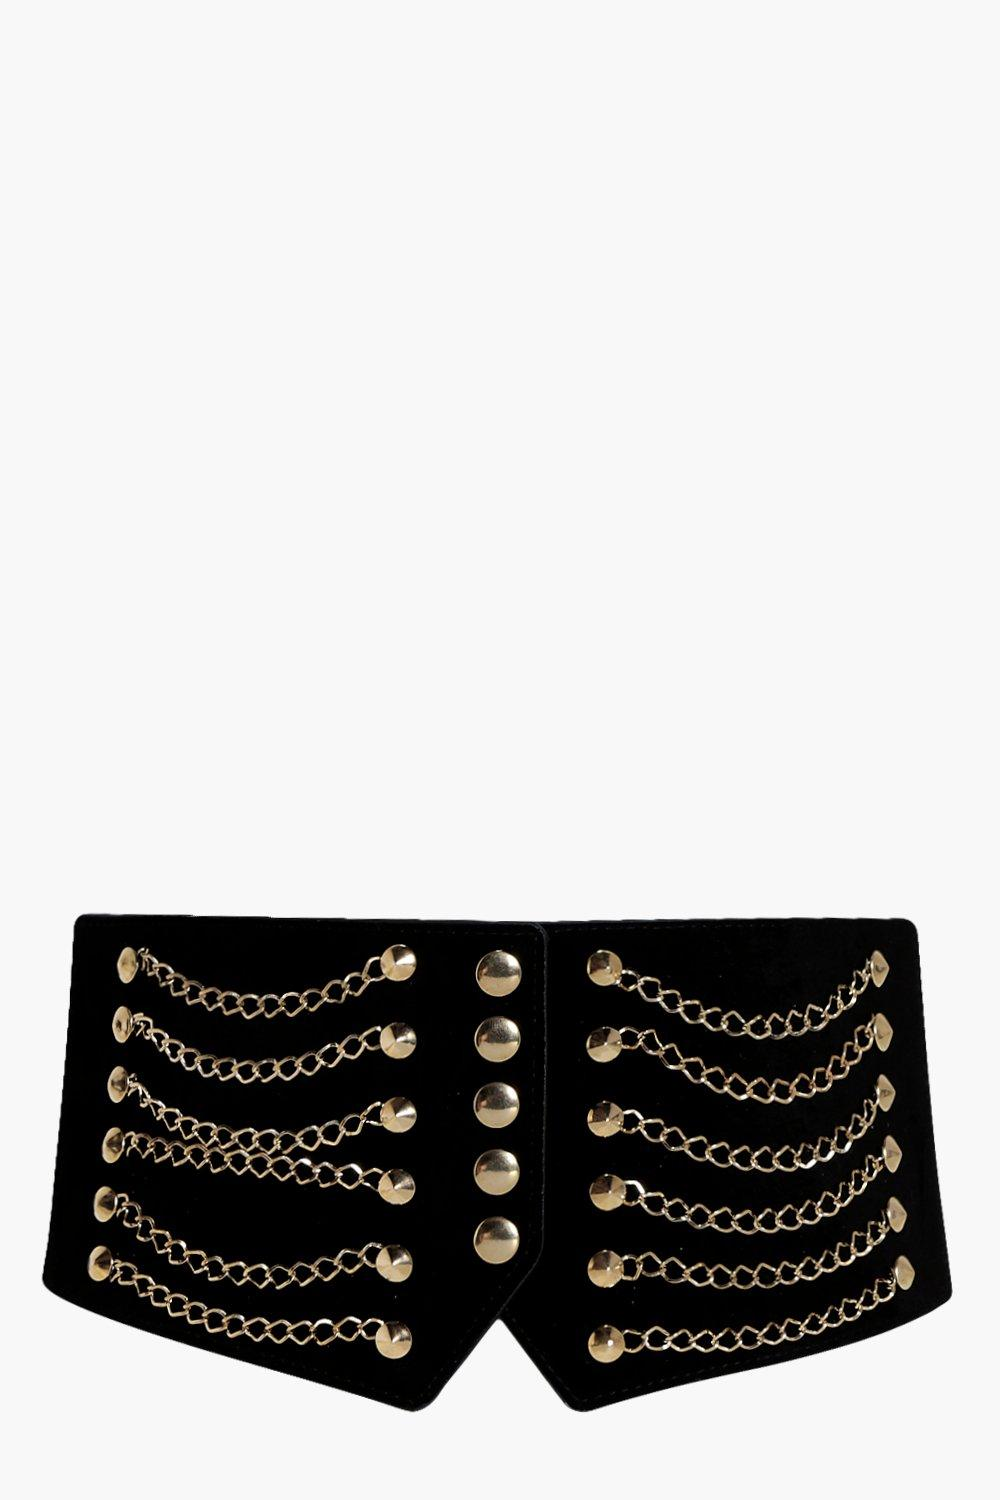 Chain And Stud Waist Belt - black - Eliza Chain An